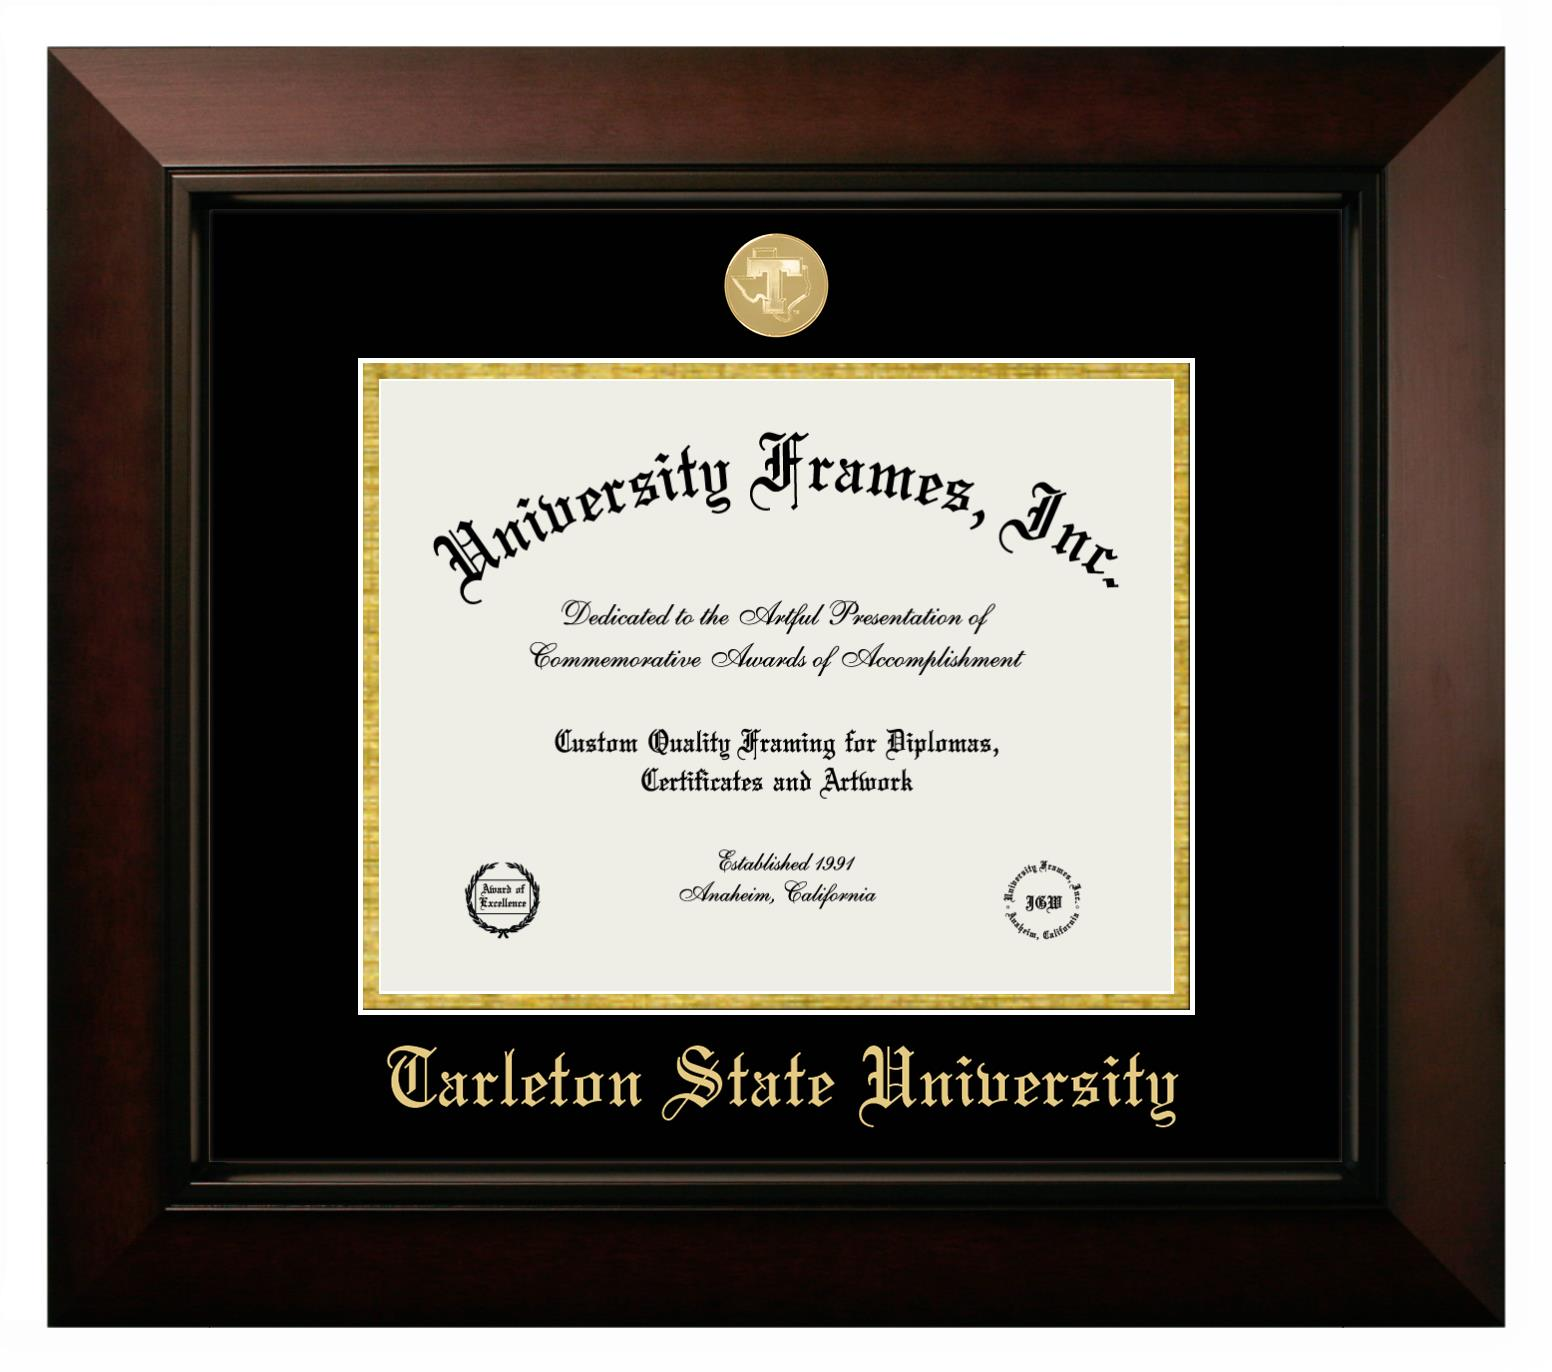 Tarleton State University Diploma Frame In Legacy Black Cherry With Black Gold Mats